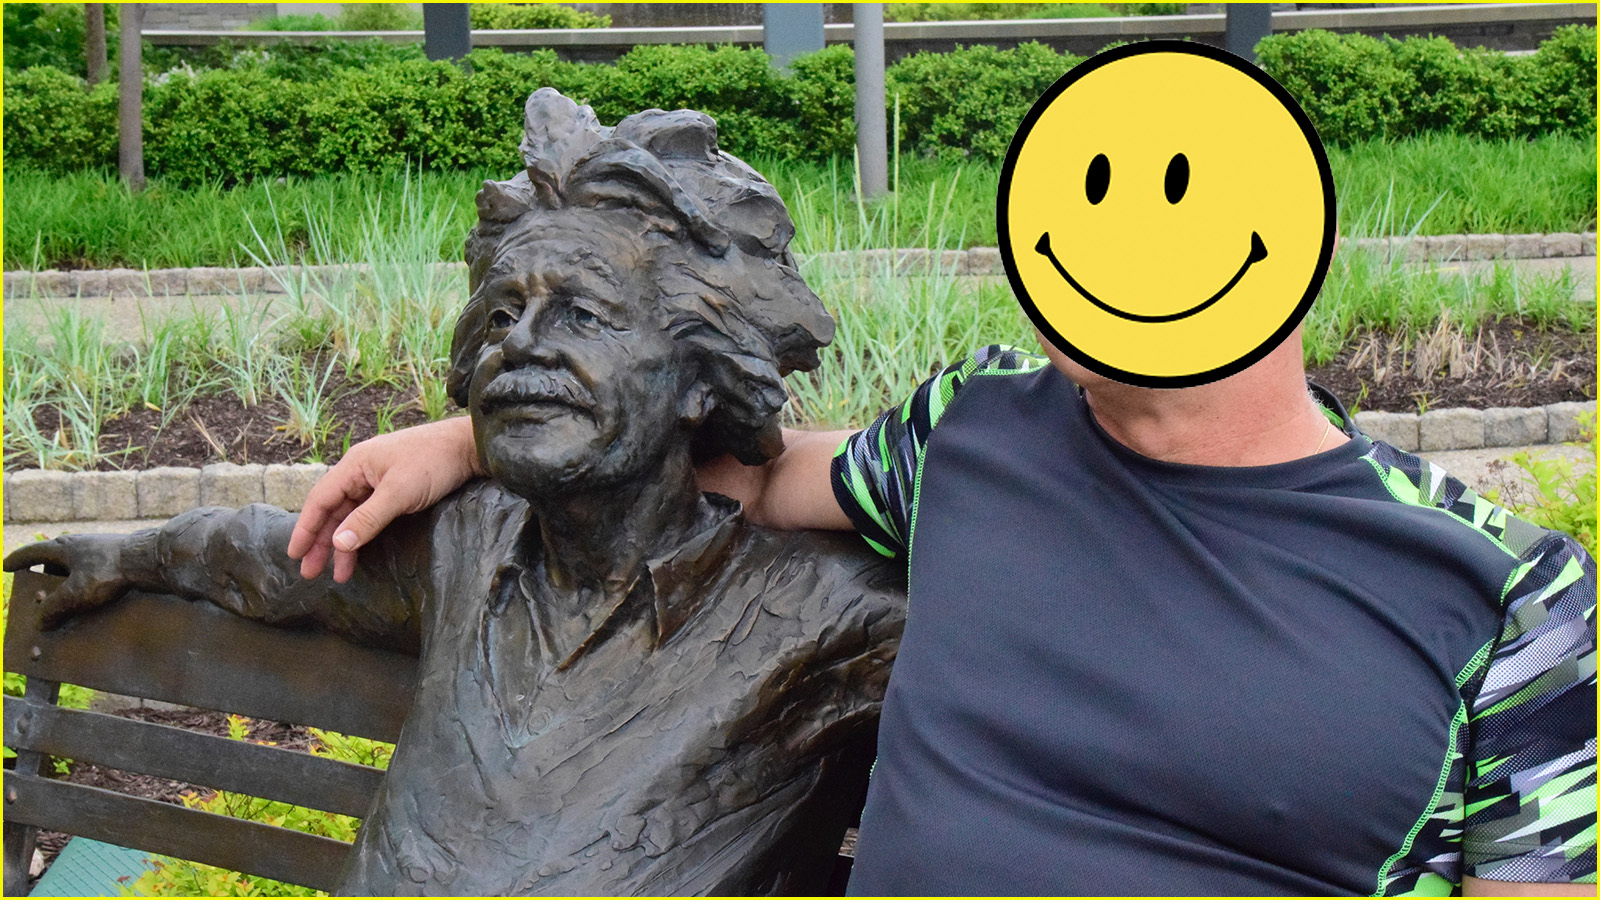 hanging with albert (c) mark somple 2019